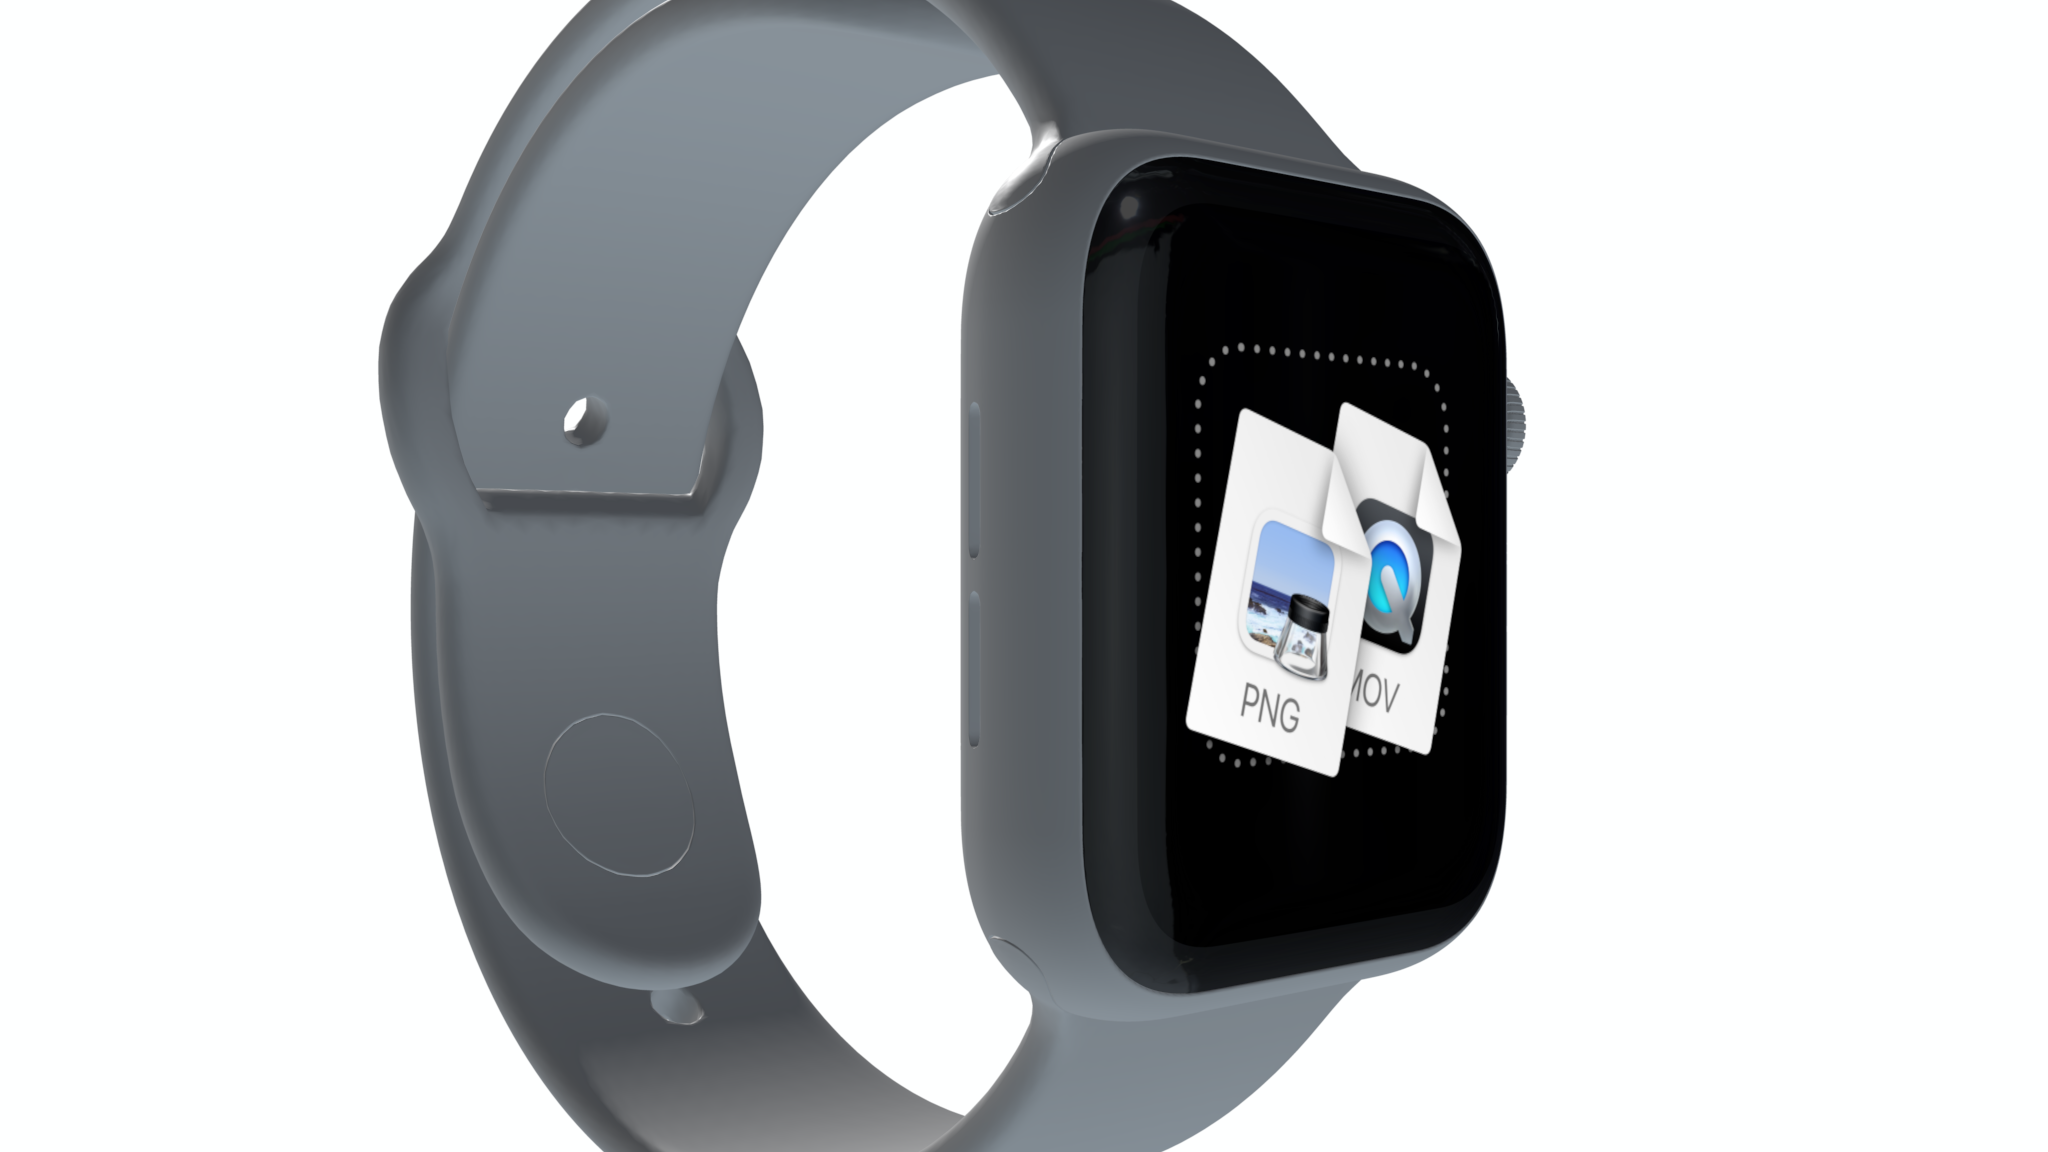 Apple Watch mockup seen from a side, with a gray band